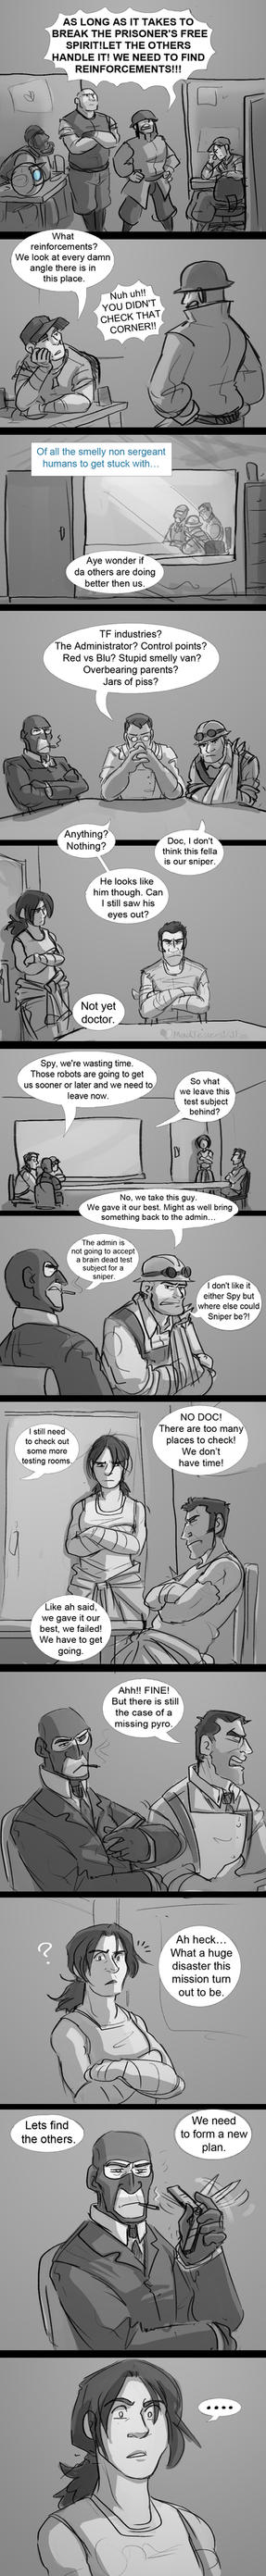 TF2-Long Lost Pg. 72 by MadJesters1